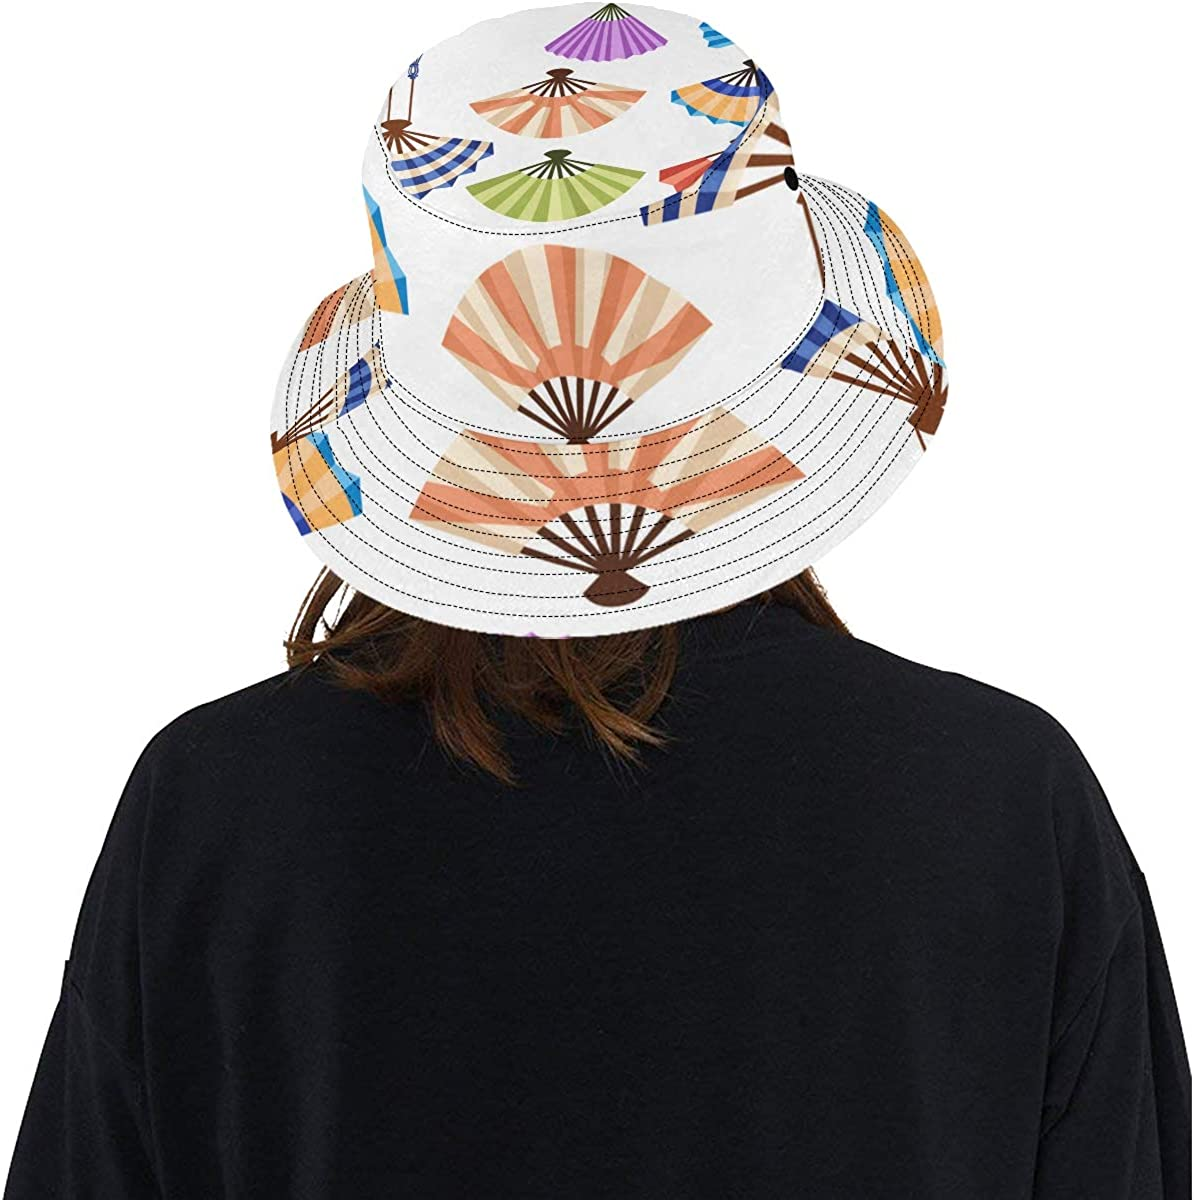 Top Hats Summer Unisex Bucket Hat Fan Various Style Colorful Reversible Fisherman Cap Beach Fishing Picnic Hat for Lady Fisherman